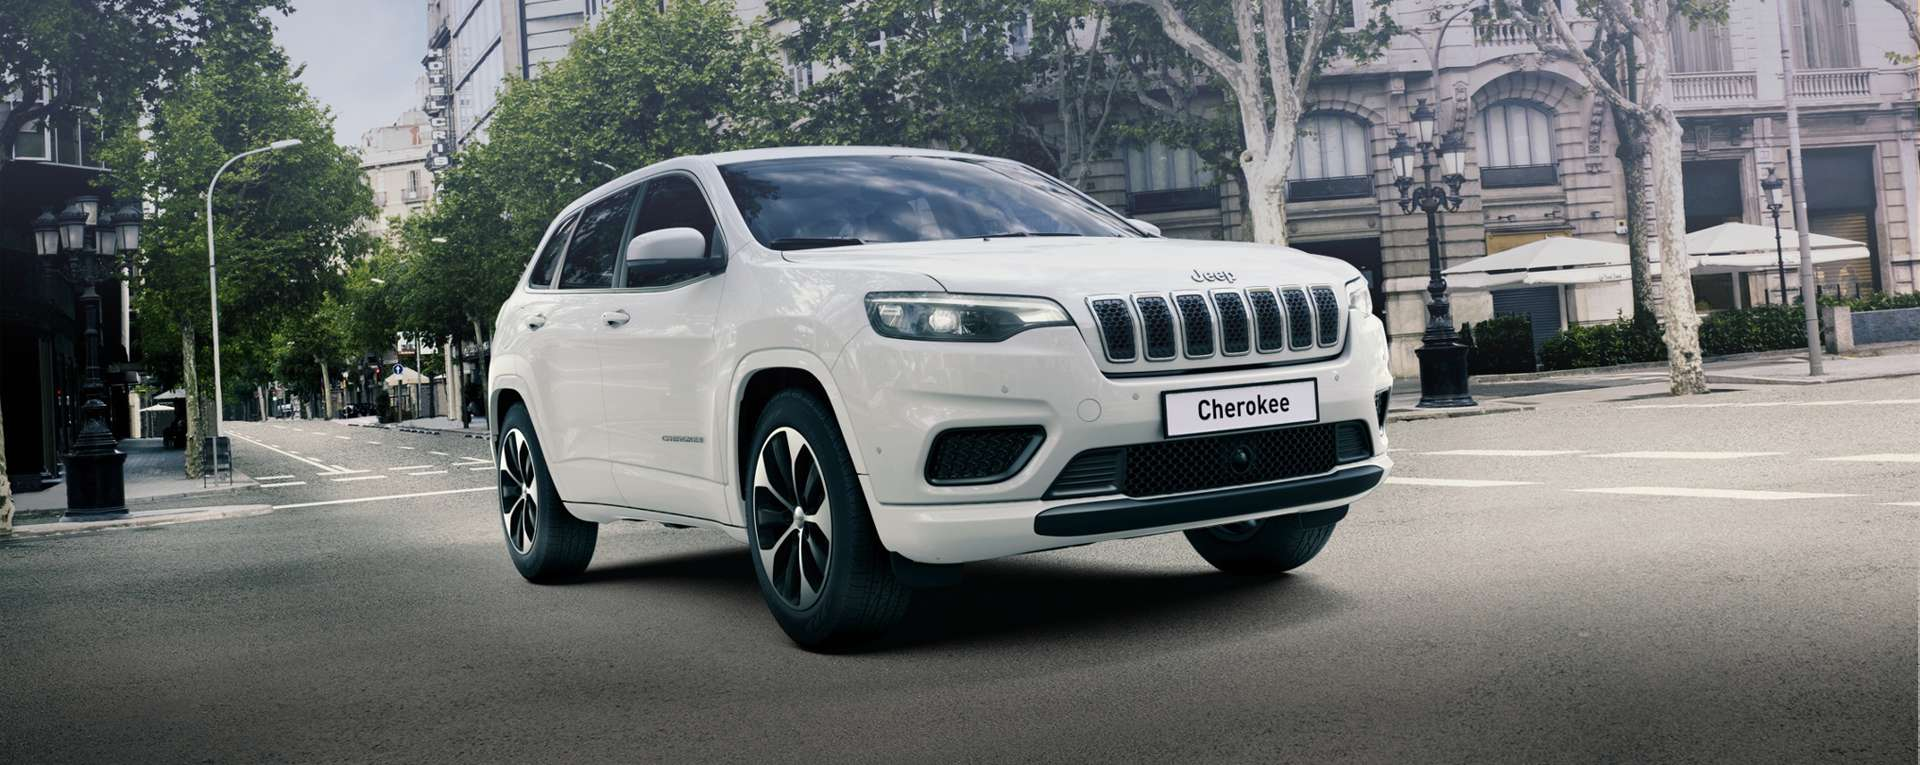 JEEP® CHEROKEE Main Slide